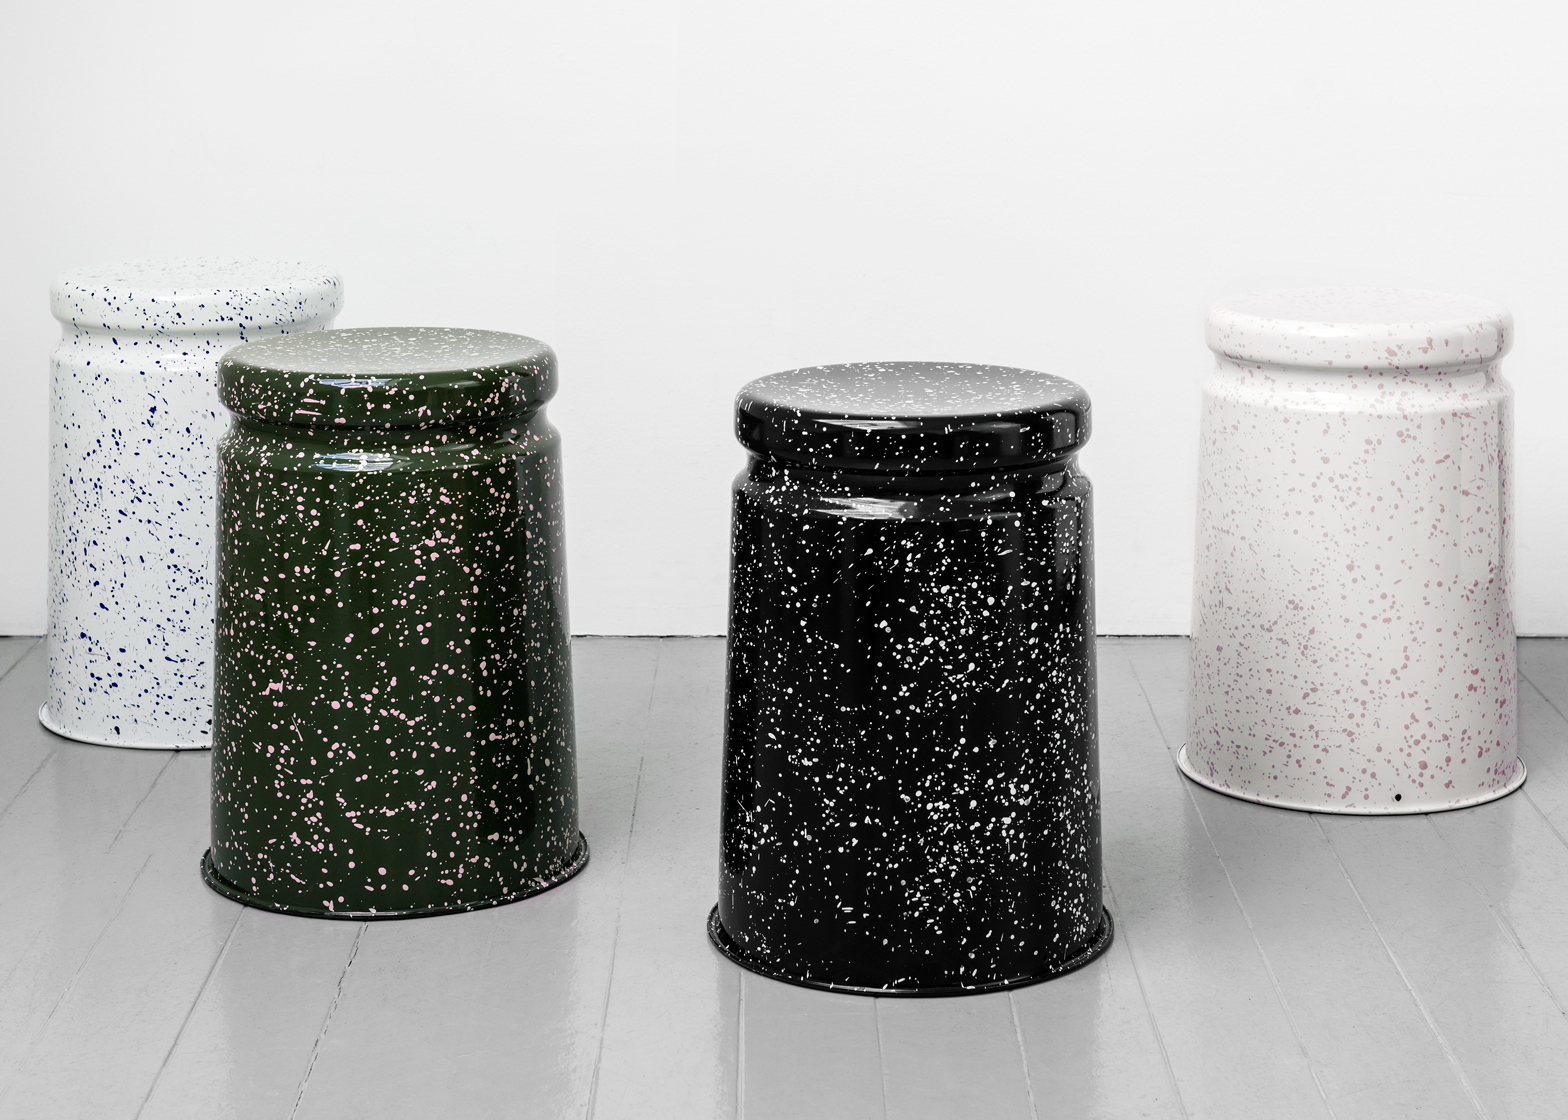 Splatter stool by Max Lamb for Hem